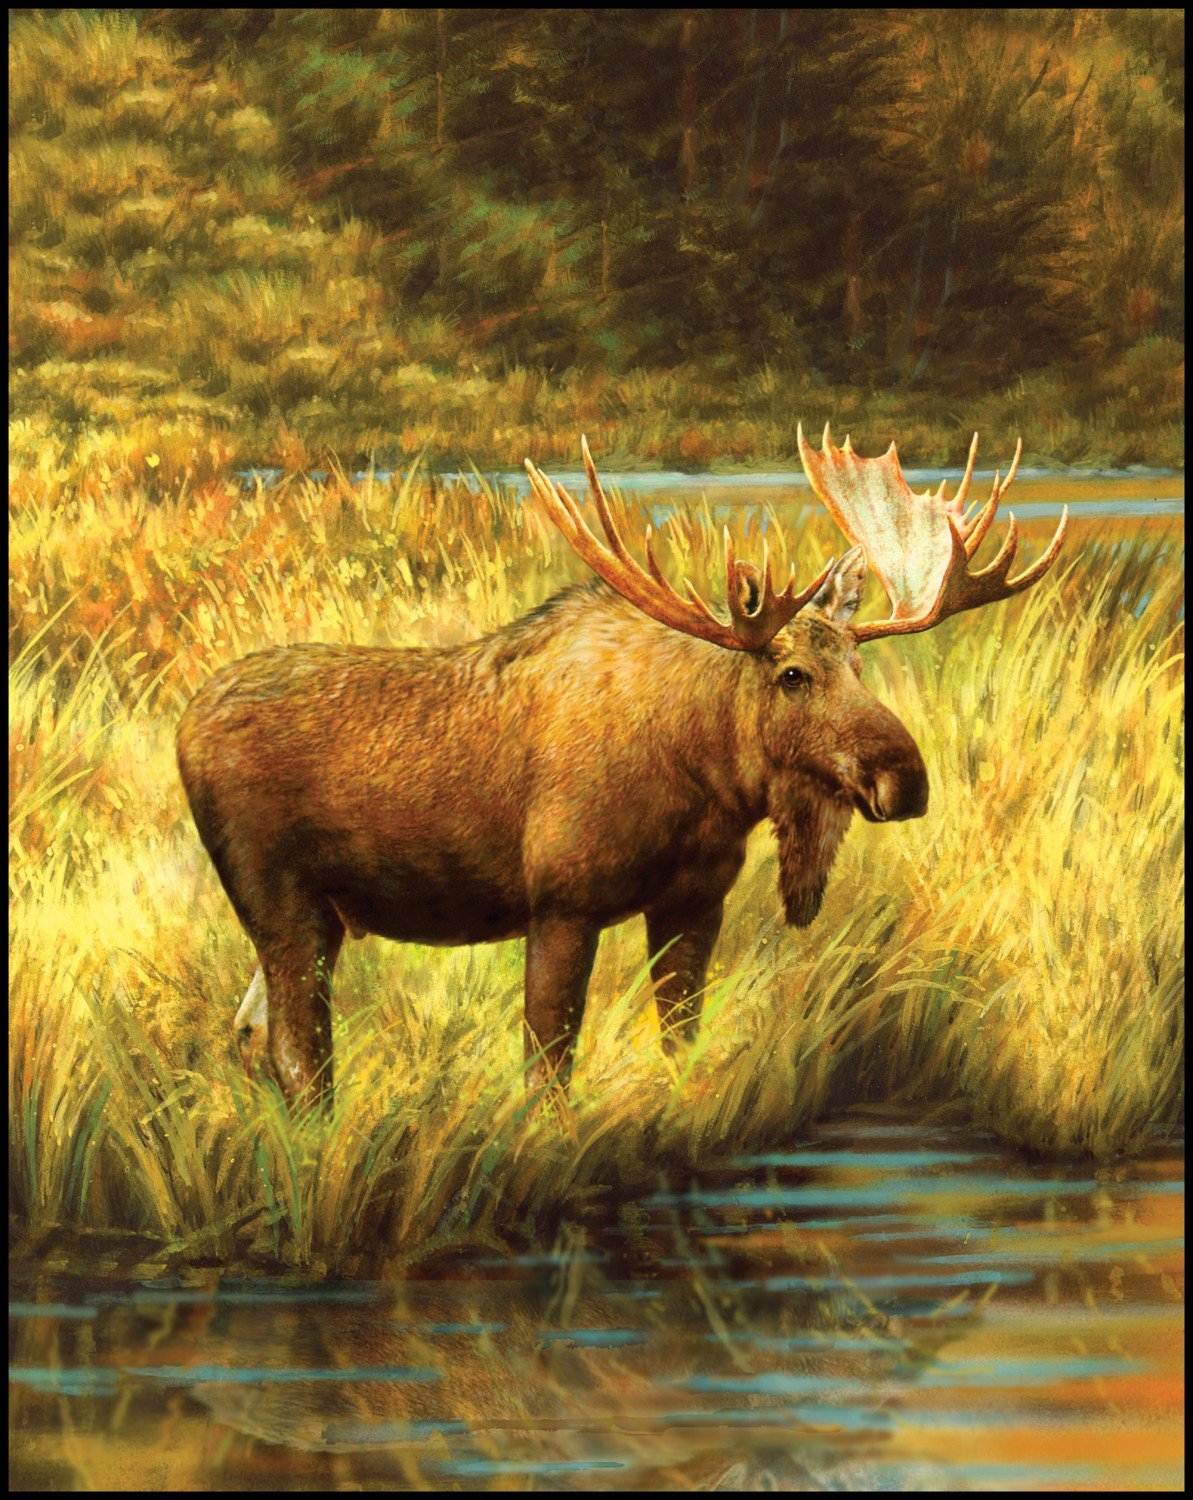 Moose - DIGITAL PANEL